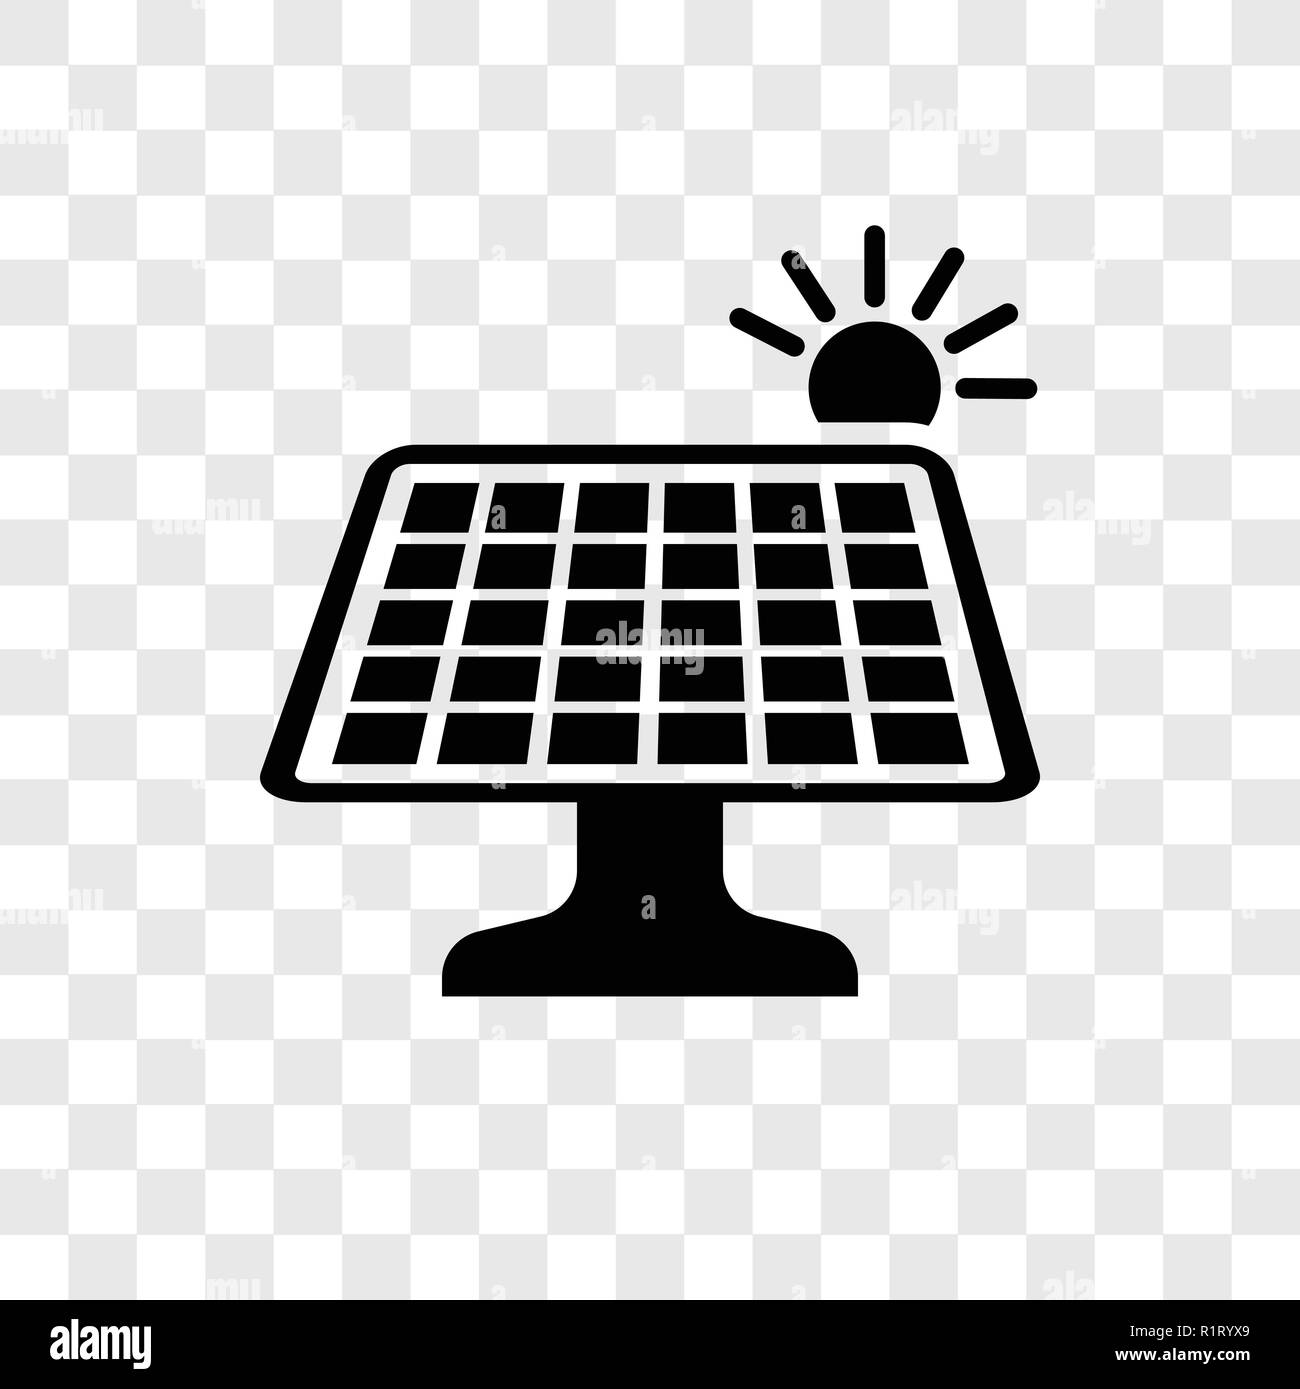 Solar panel vector icon isolated on transparent background, Solar panel transparency logo concept - Stock Image